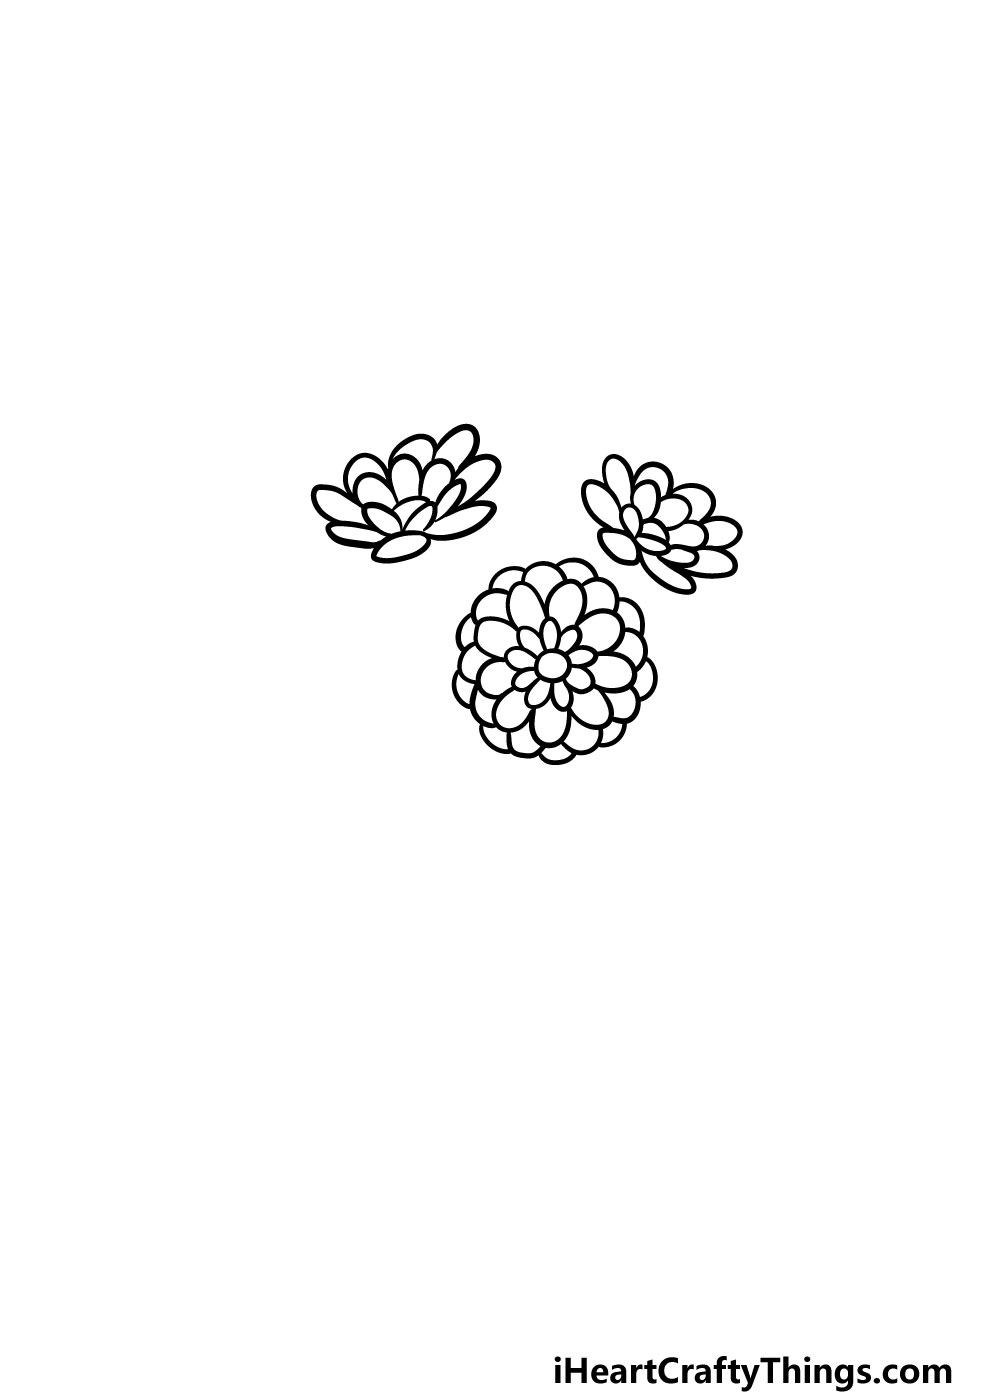 drawing a bouquet of flowers step 2